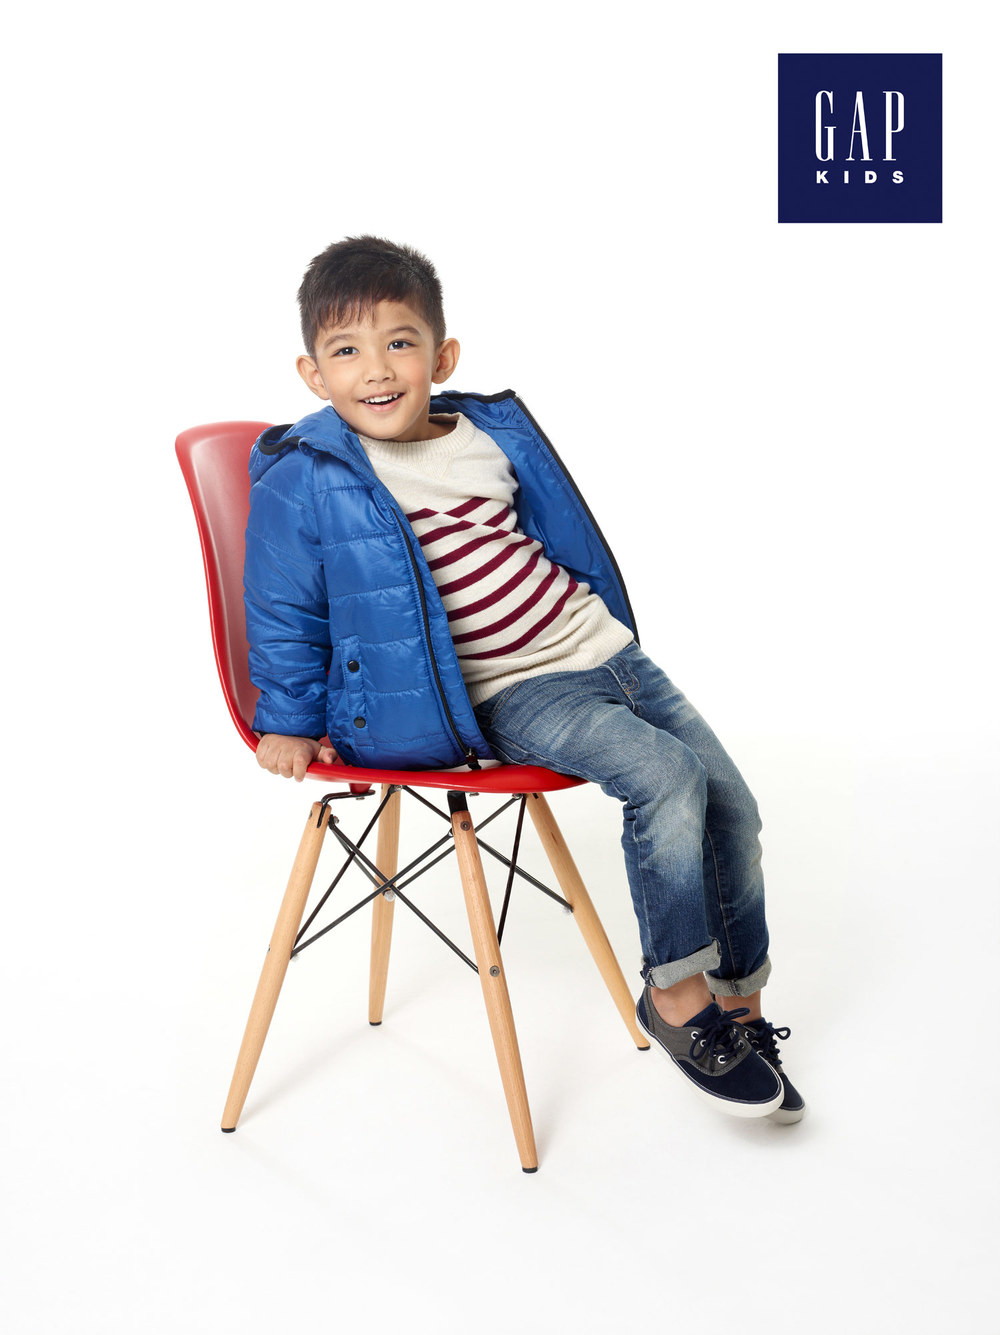 20141018--Gap-Kids-60378---Mark-2.jpg